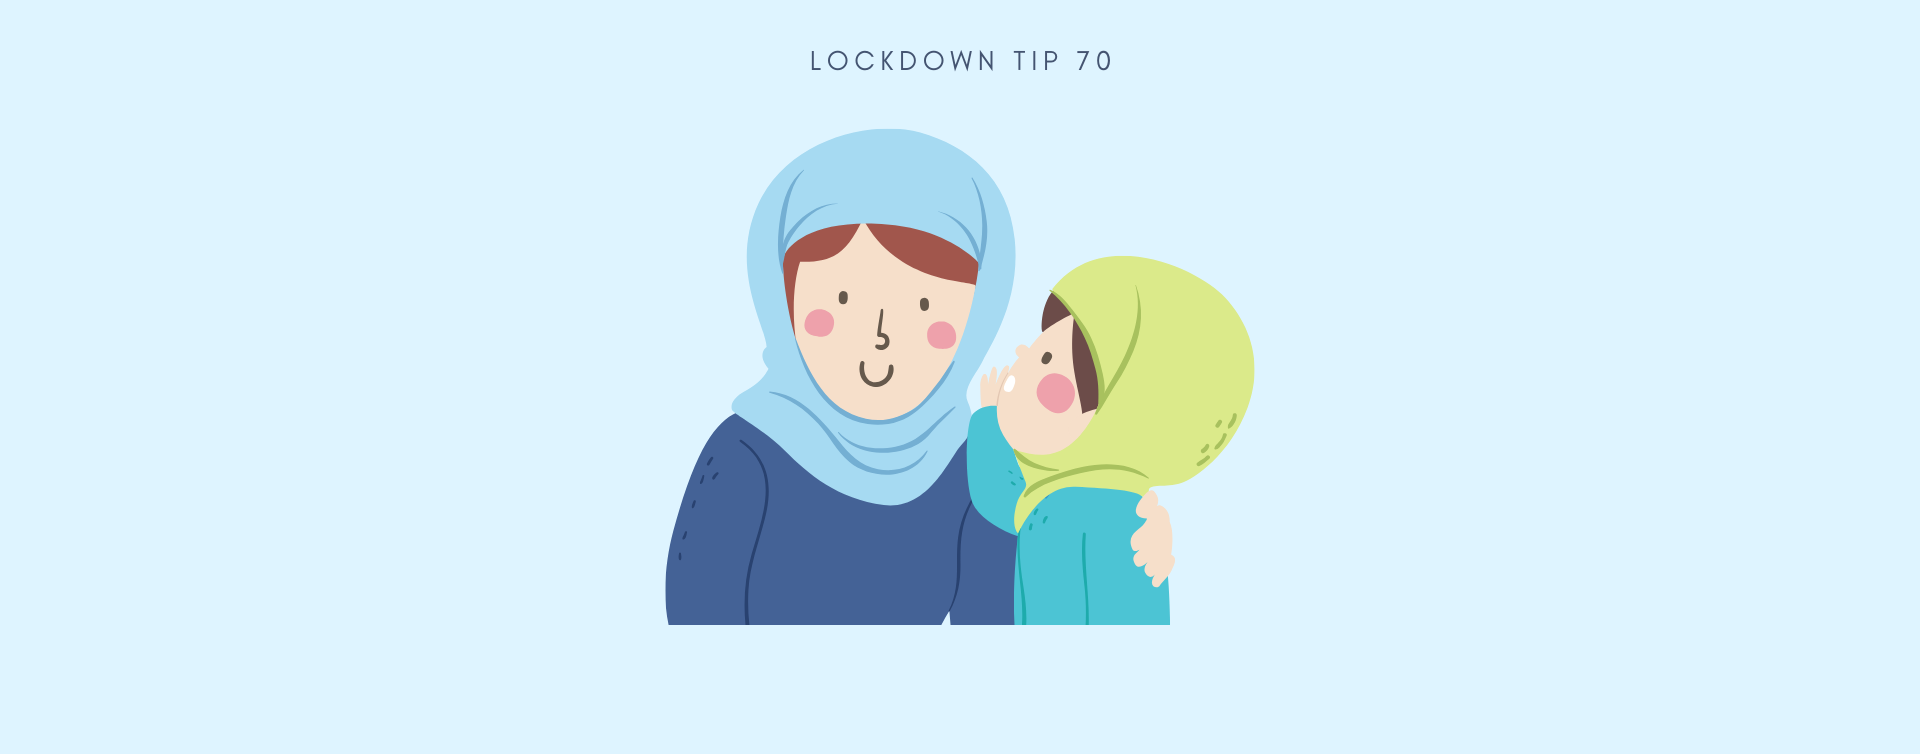 MCSA Lockdown Tip 70